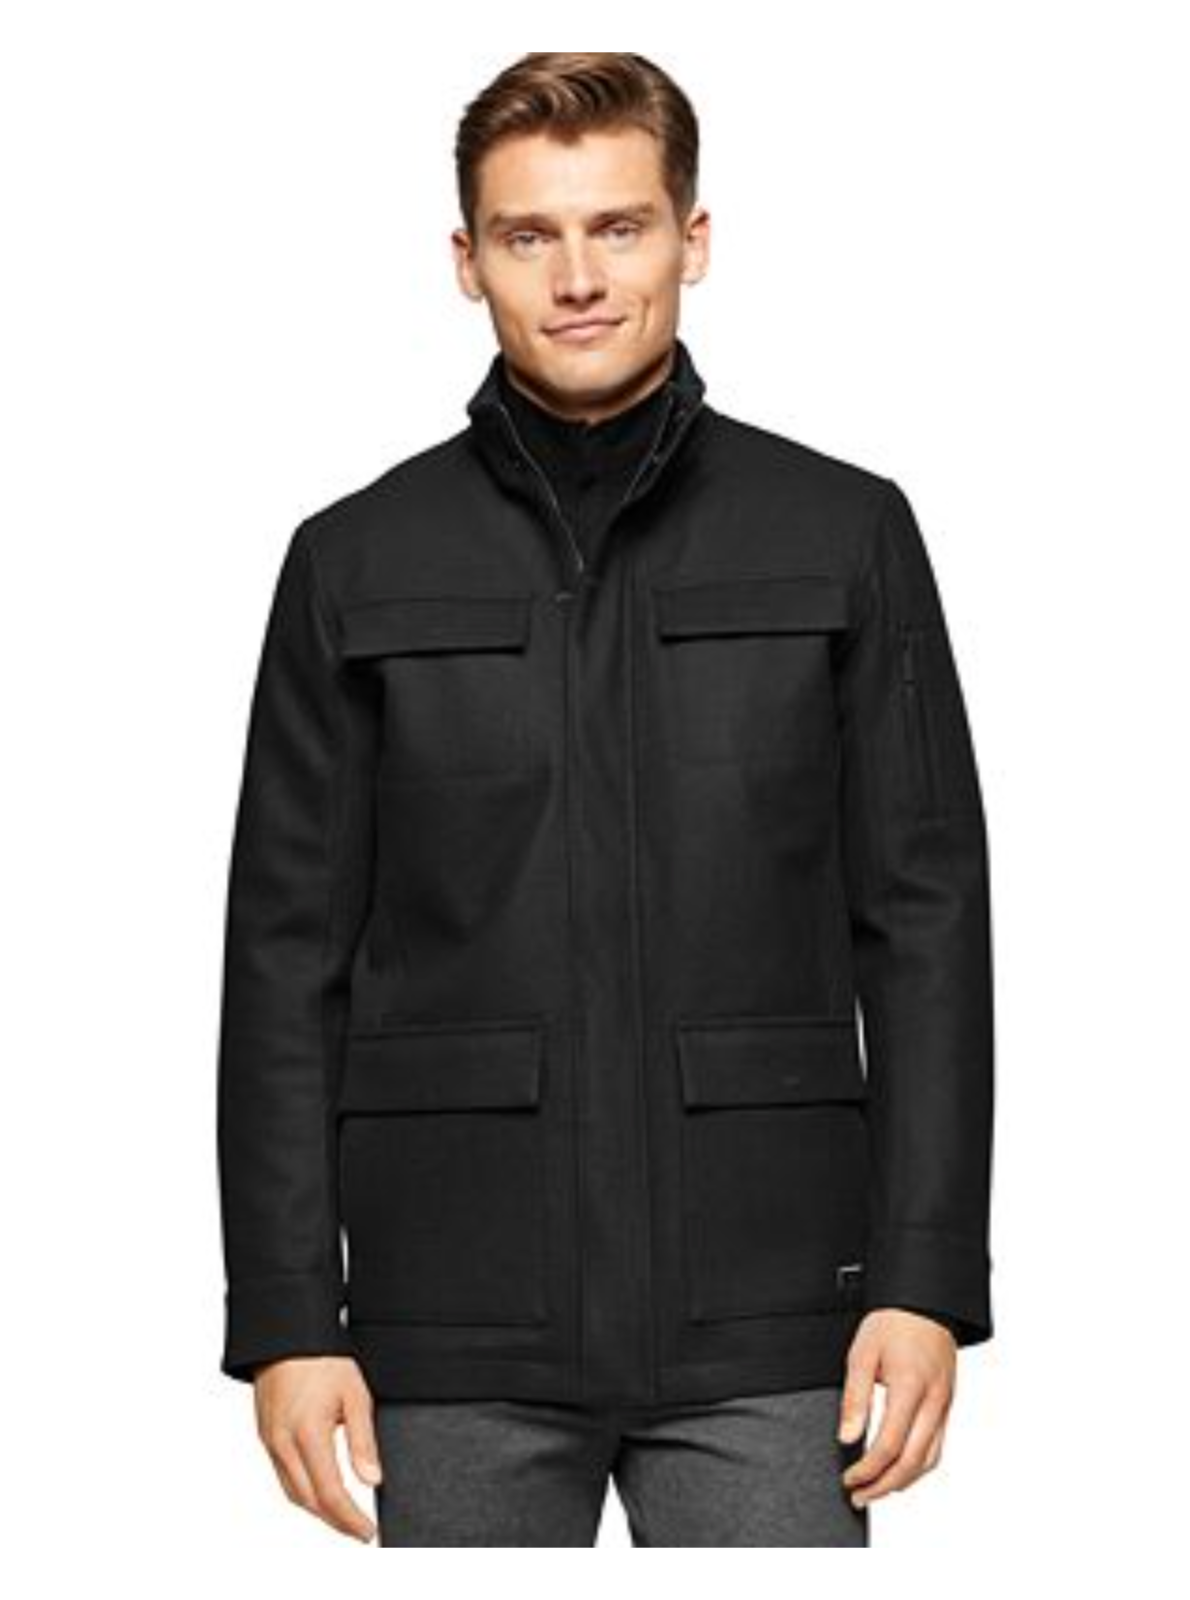 Primary image for $298.00 Calvin Klein Mens Coat 4 Pocket Full Zip Wool Blend Peacoat Black Size M